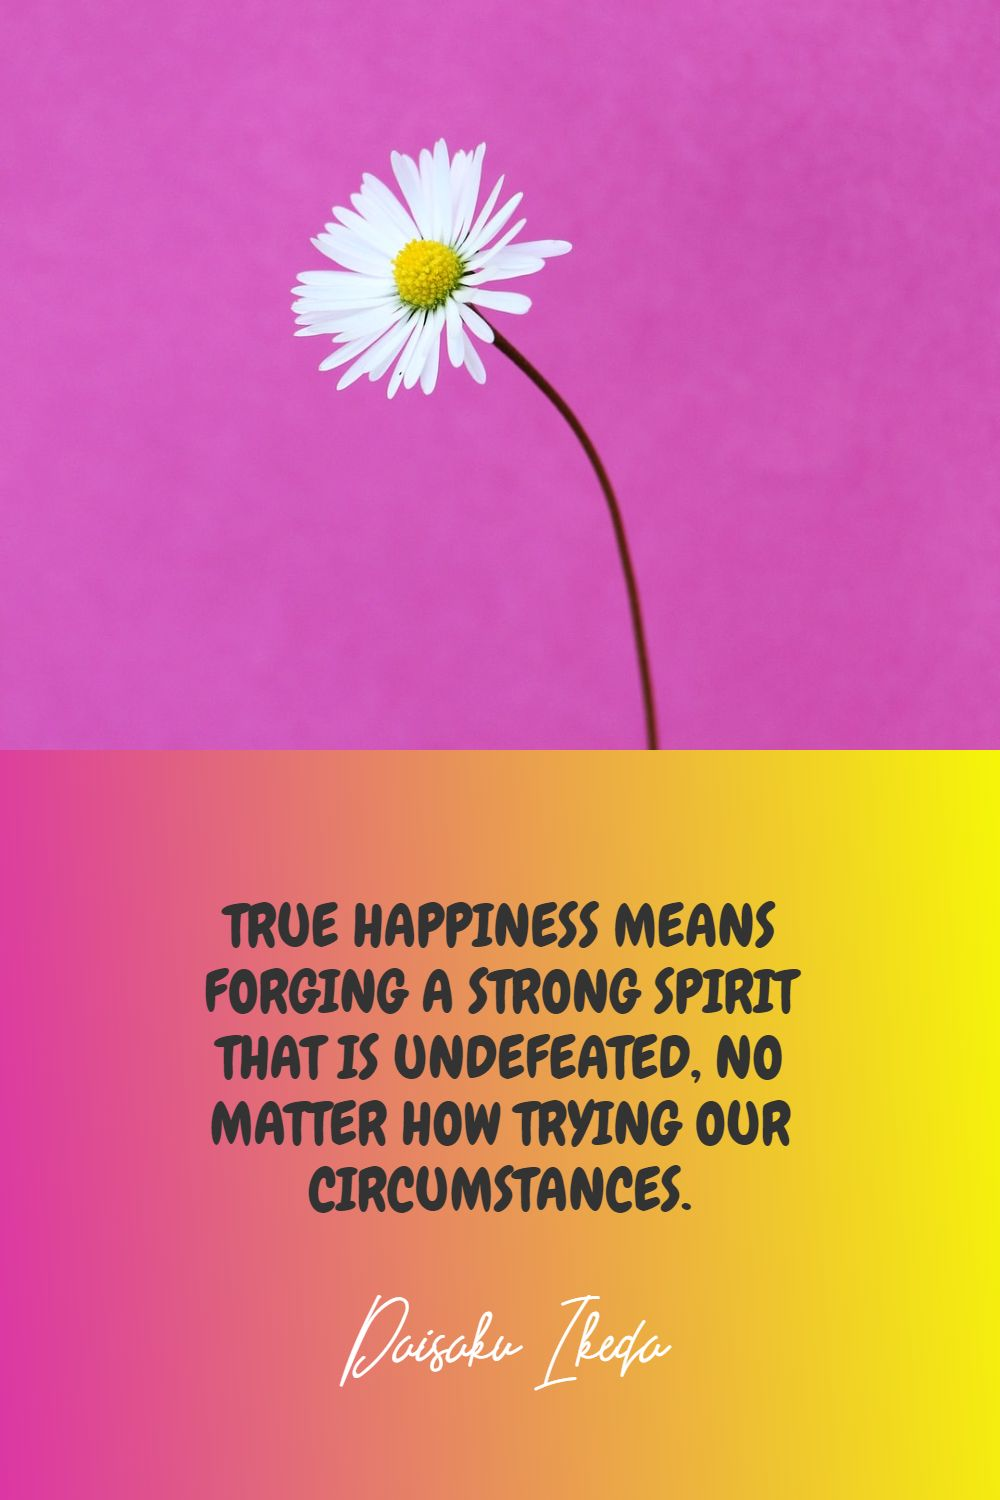 Quotes image of True happiness means forging a strong spirit that is undefeated, no matter how trying our circumstances.